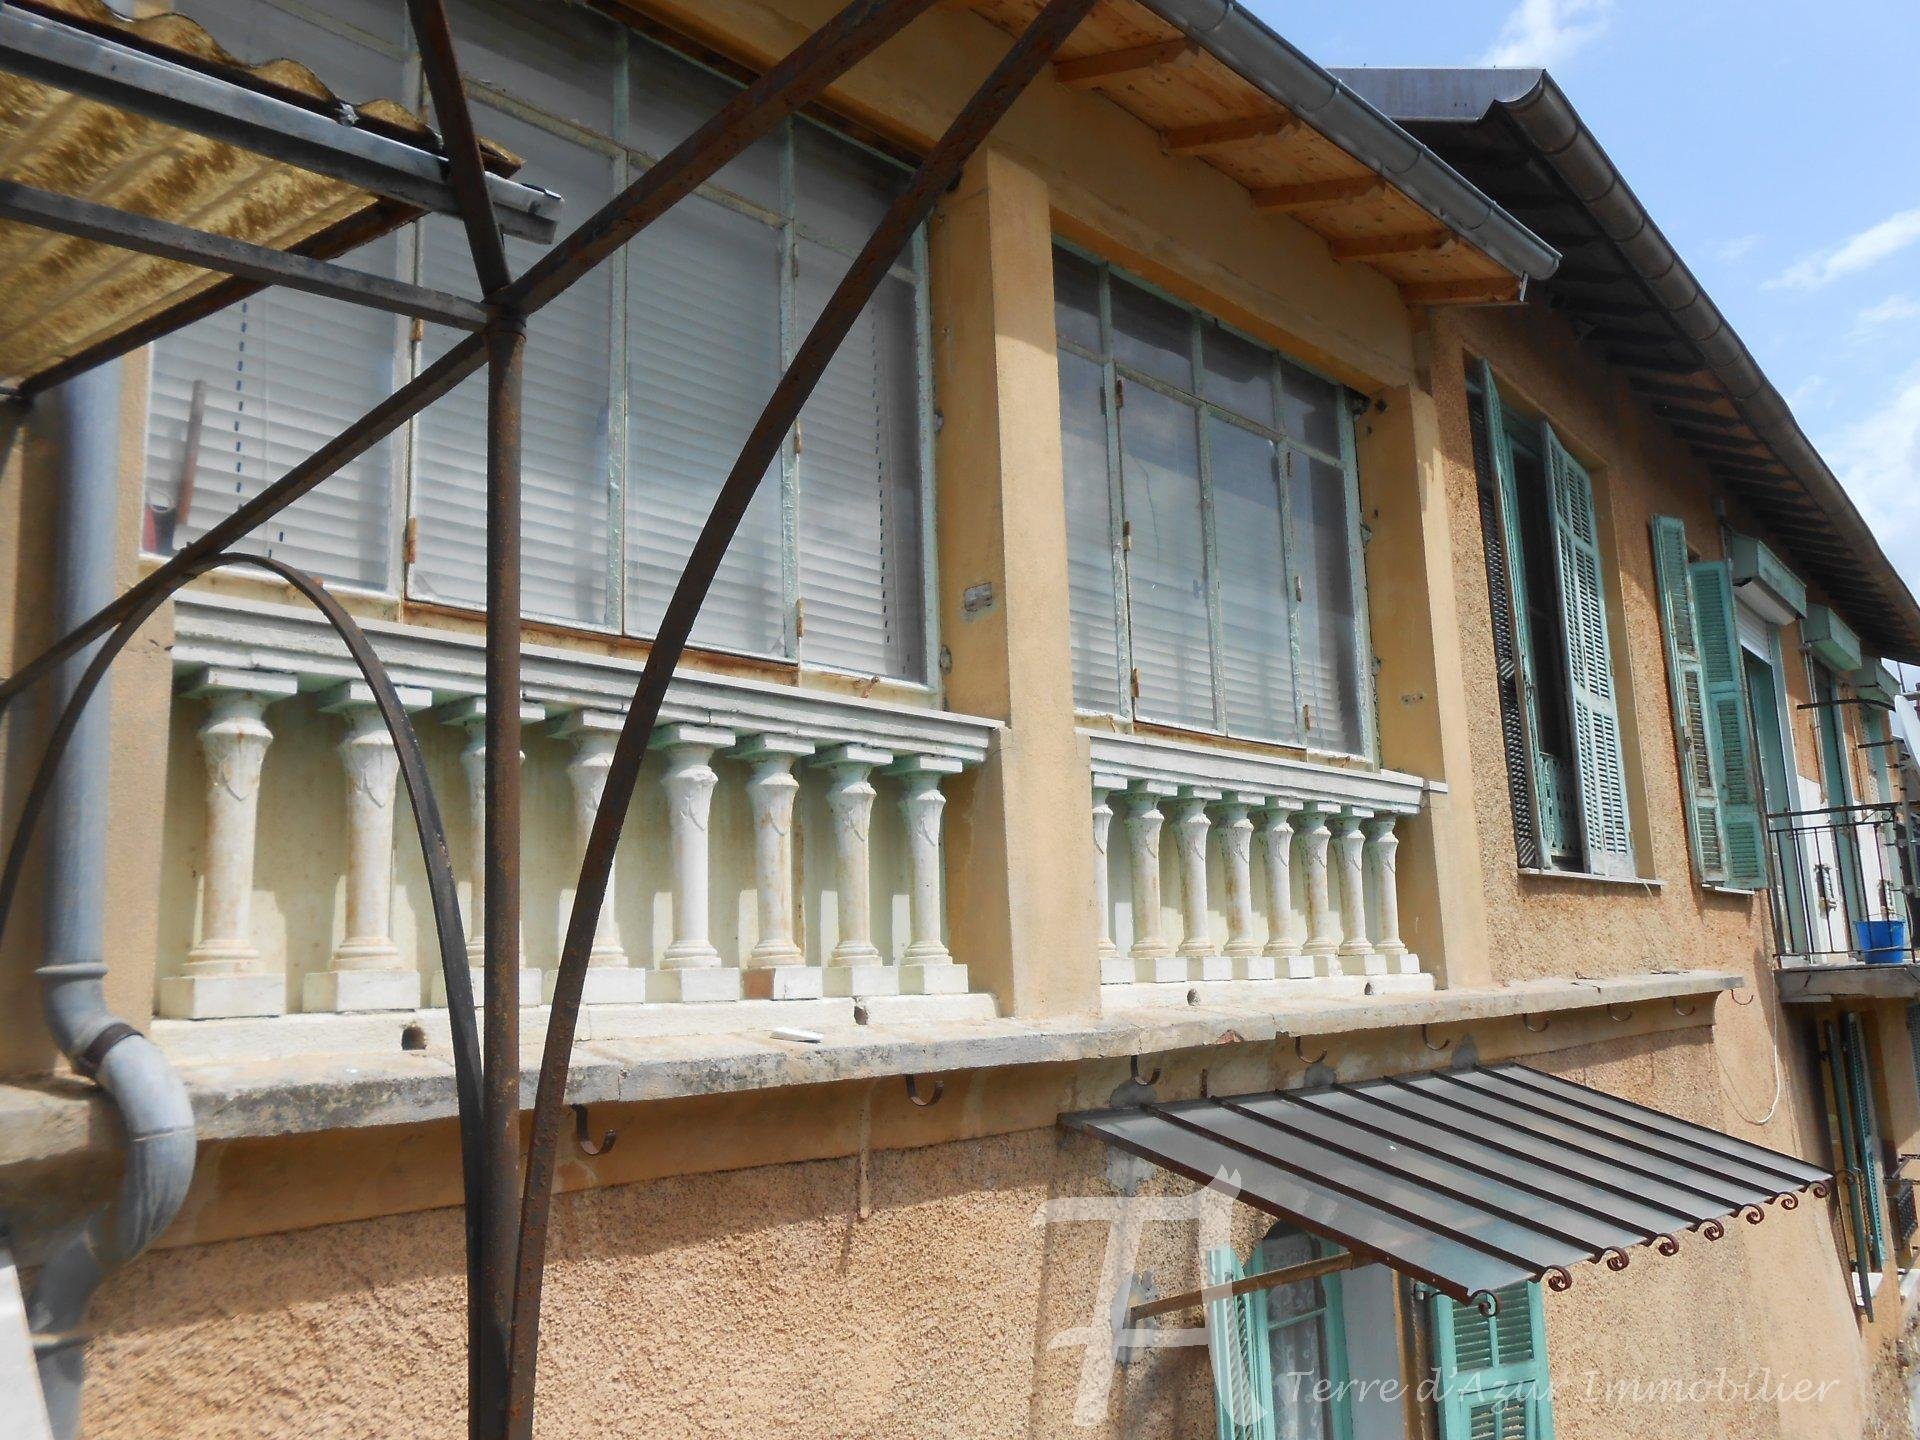 QUARTIER DU CHATEAU